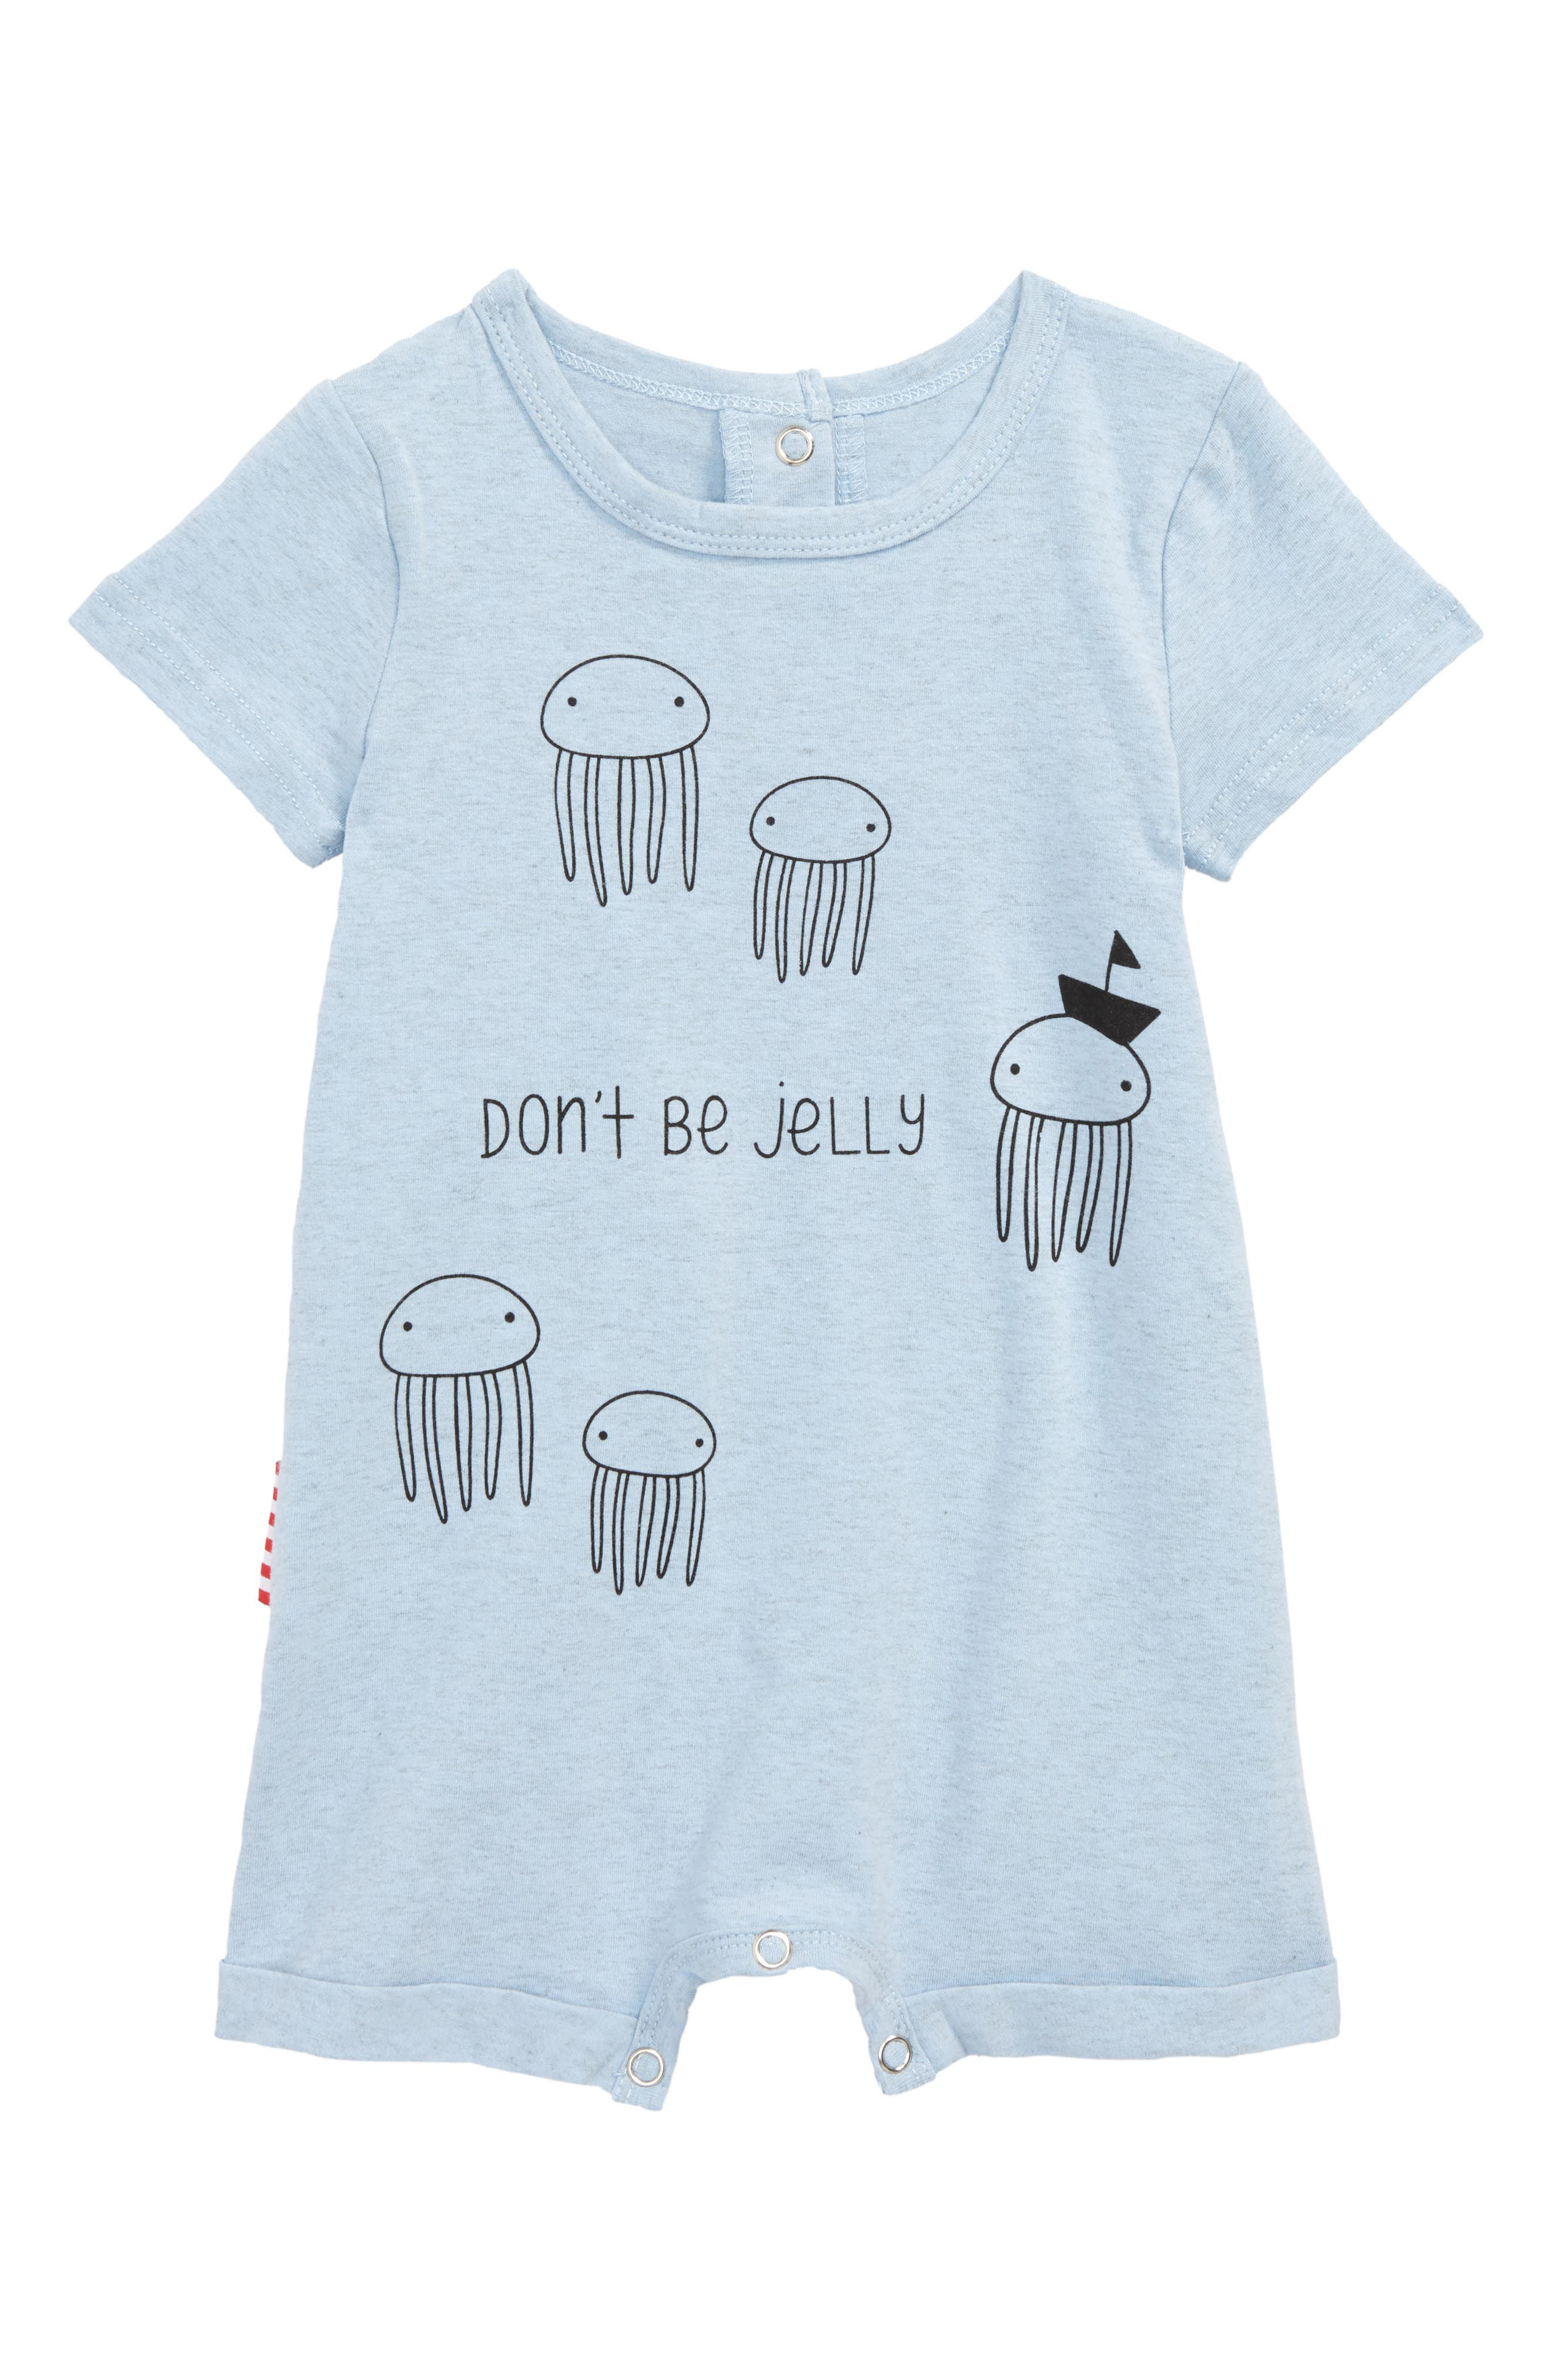 Don't Be Jelly Romper,                         Main,                         color, Blue Marl